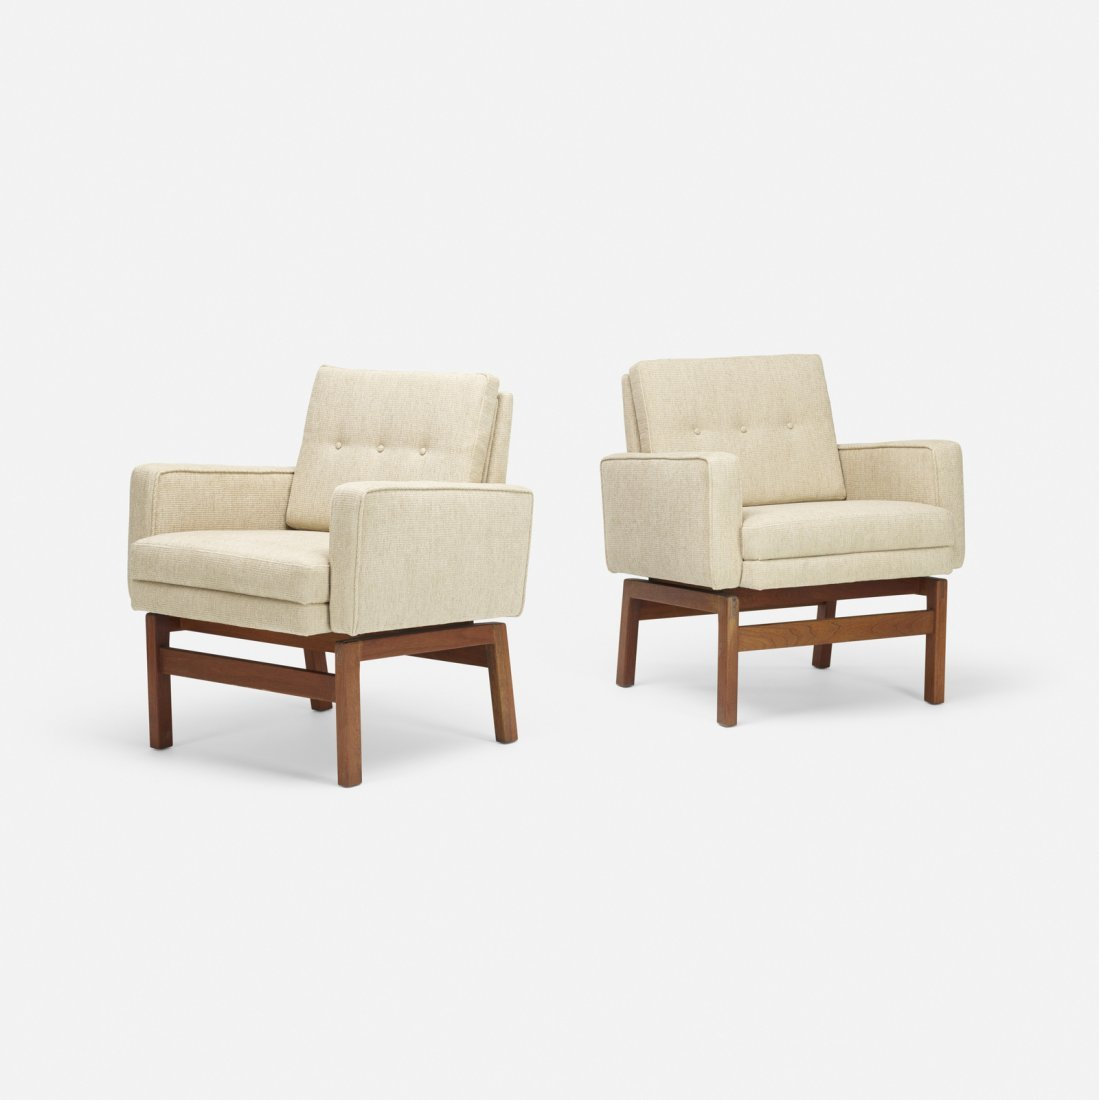 Jens Risom, lounge chairs, pair